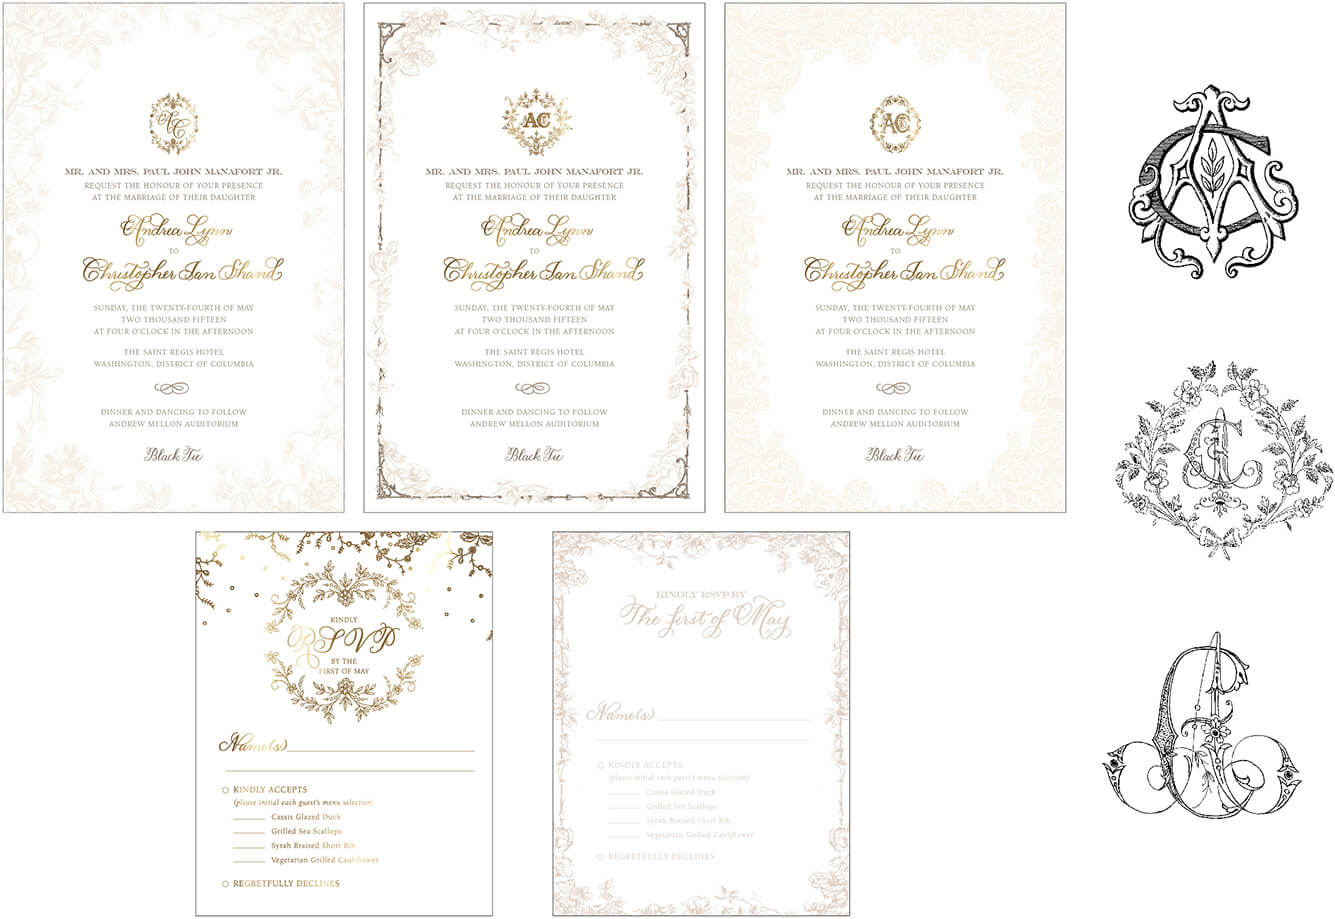 Alternate invitation designs with floral borders